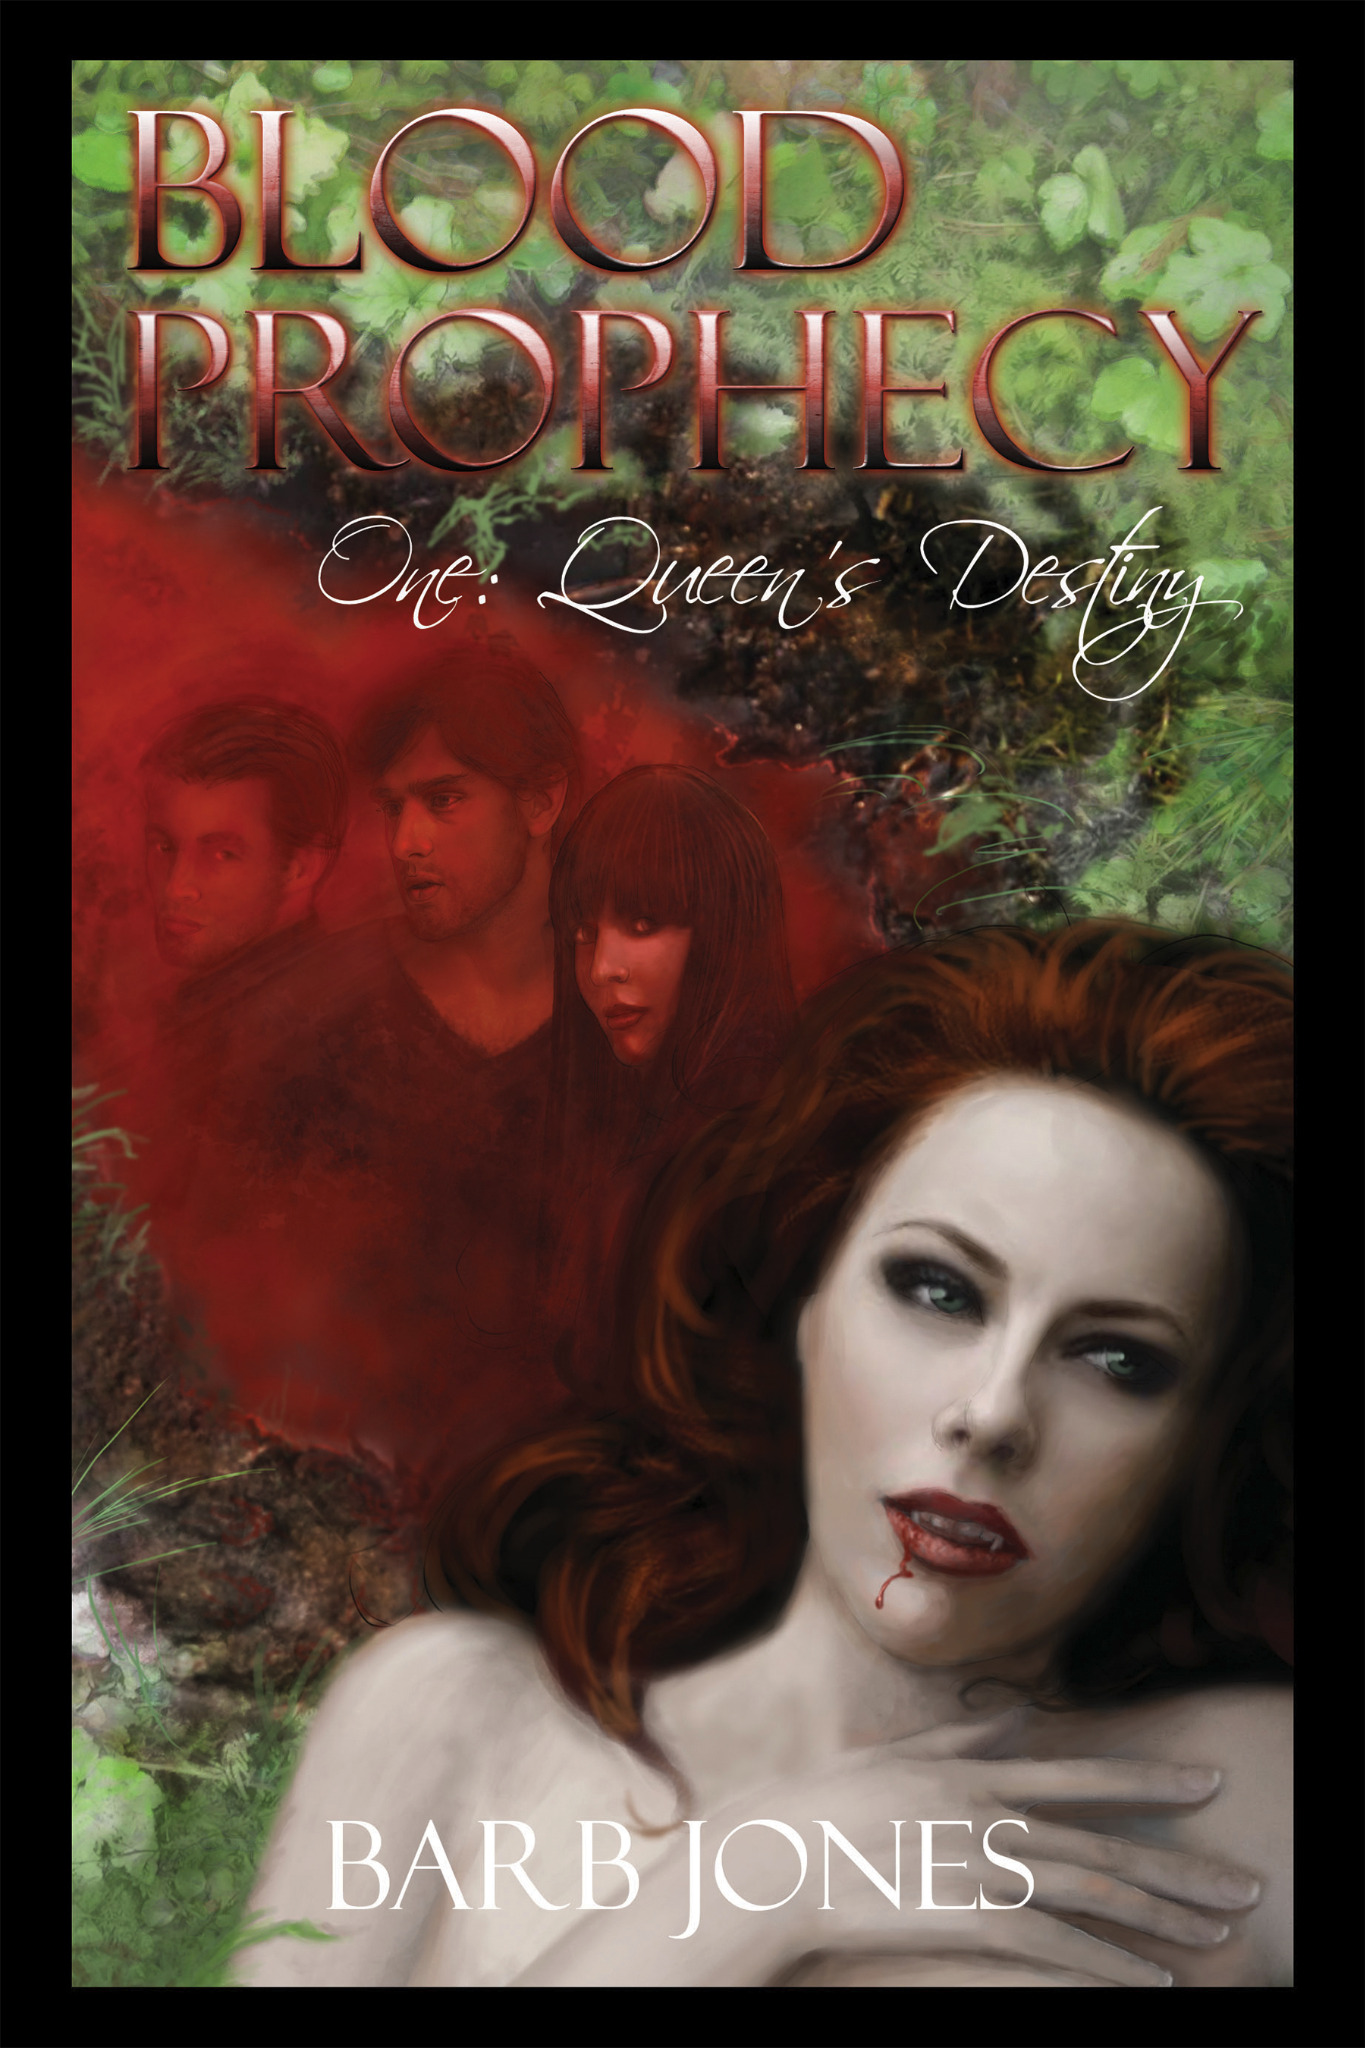 The Queen's Destiny - Blood Prophecy Book 1